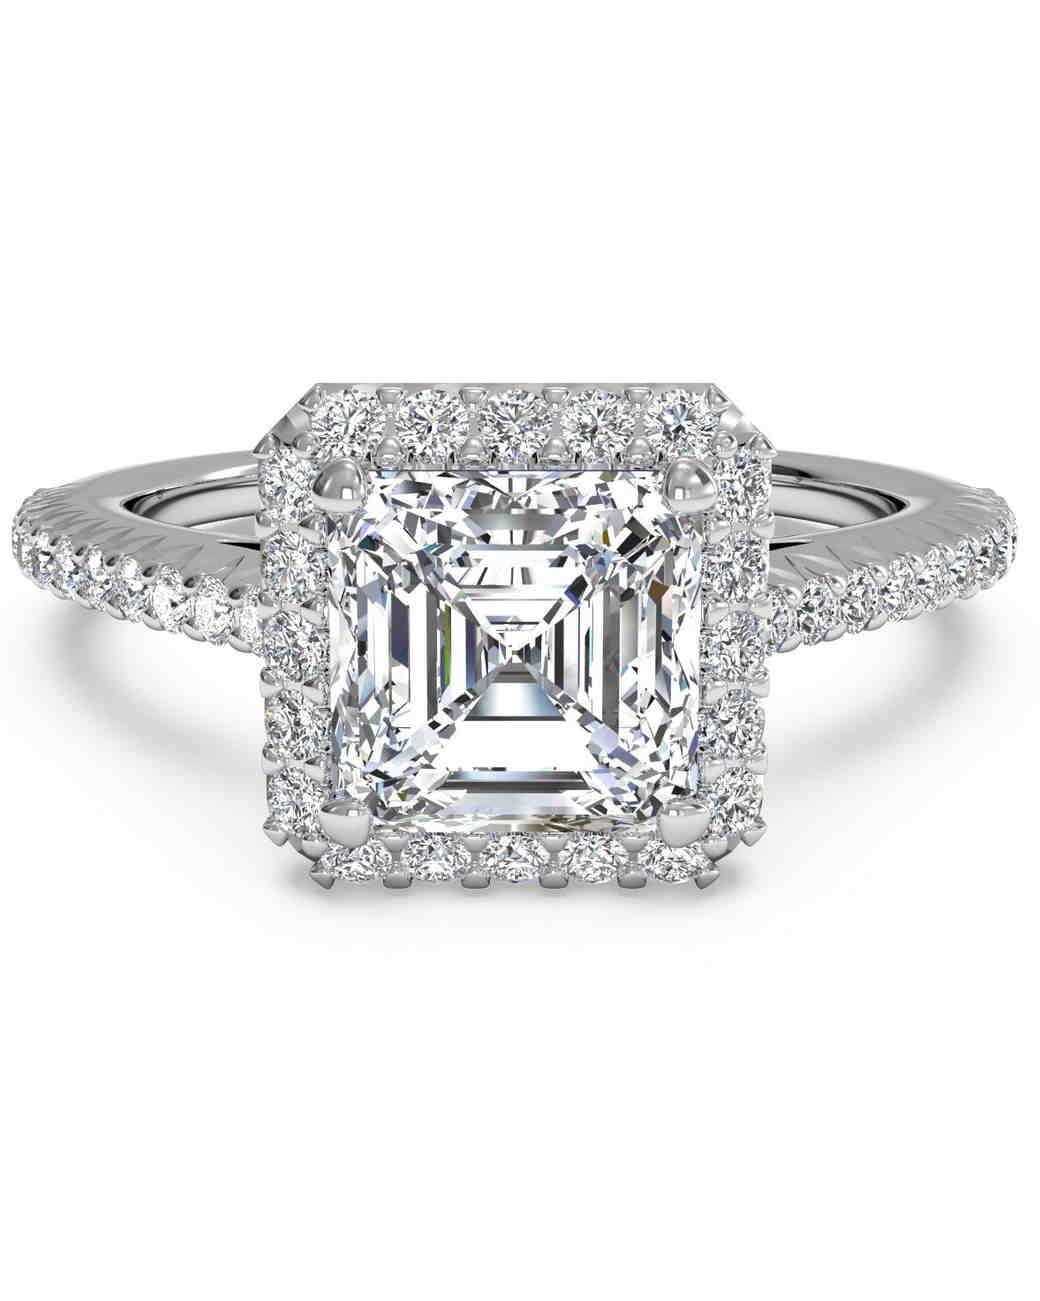 Asscher Diamond Rings | Wedding, Promise, Diamond, Engagement Intended For Asscher Cut Wedding Rings (View 11 of 15)